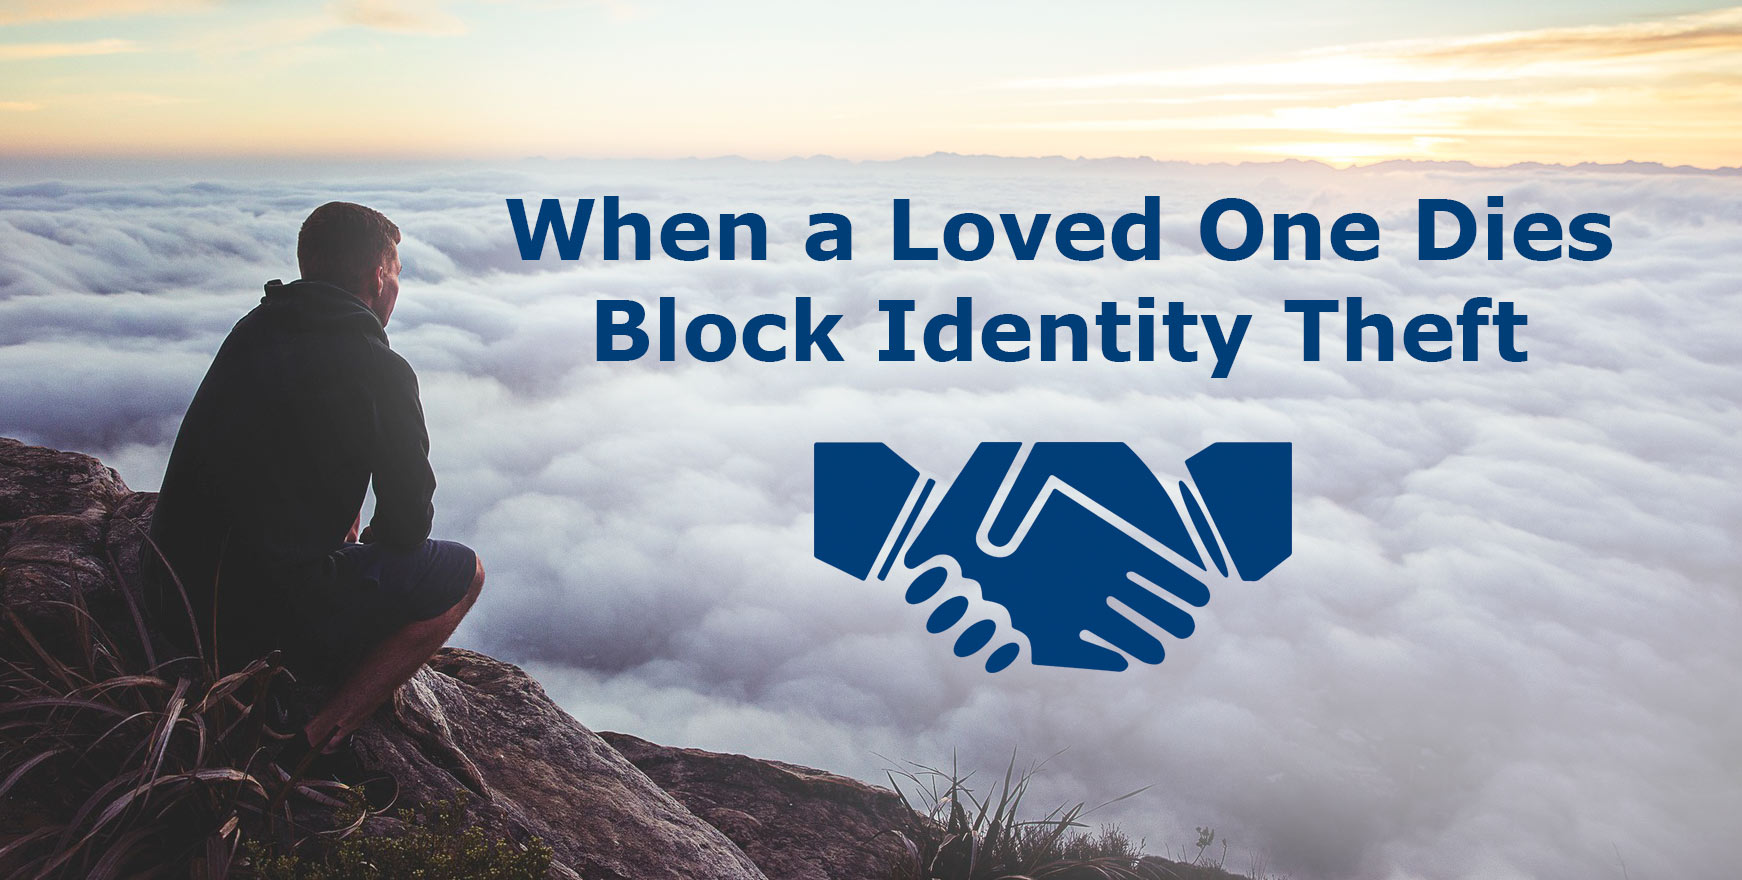 When a Loved One Dies Block Identity Theft